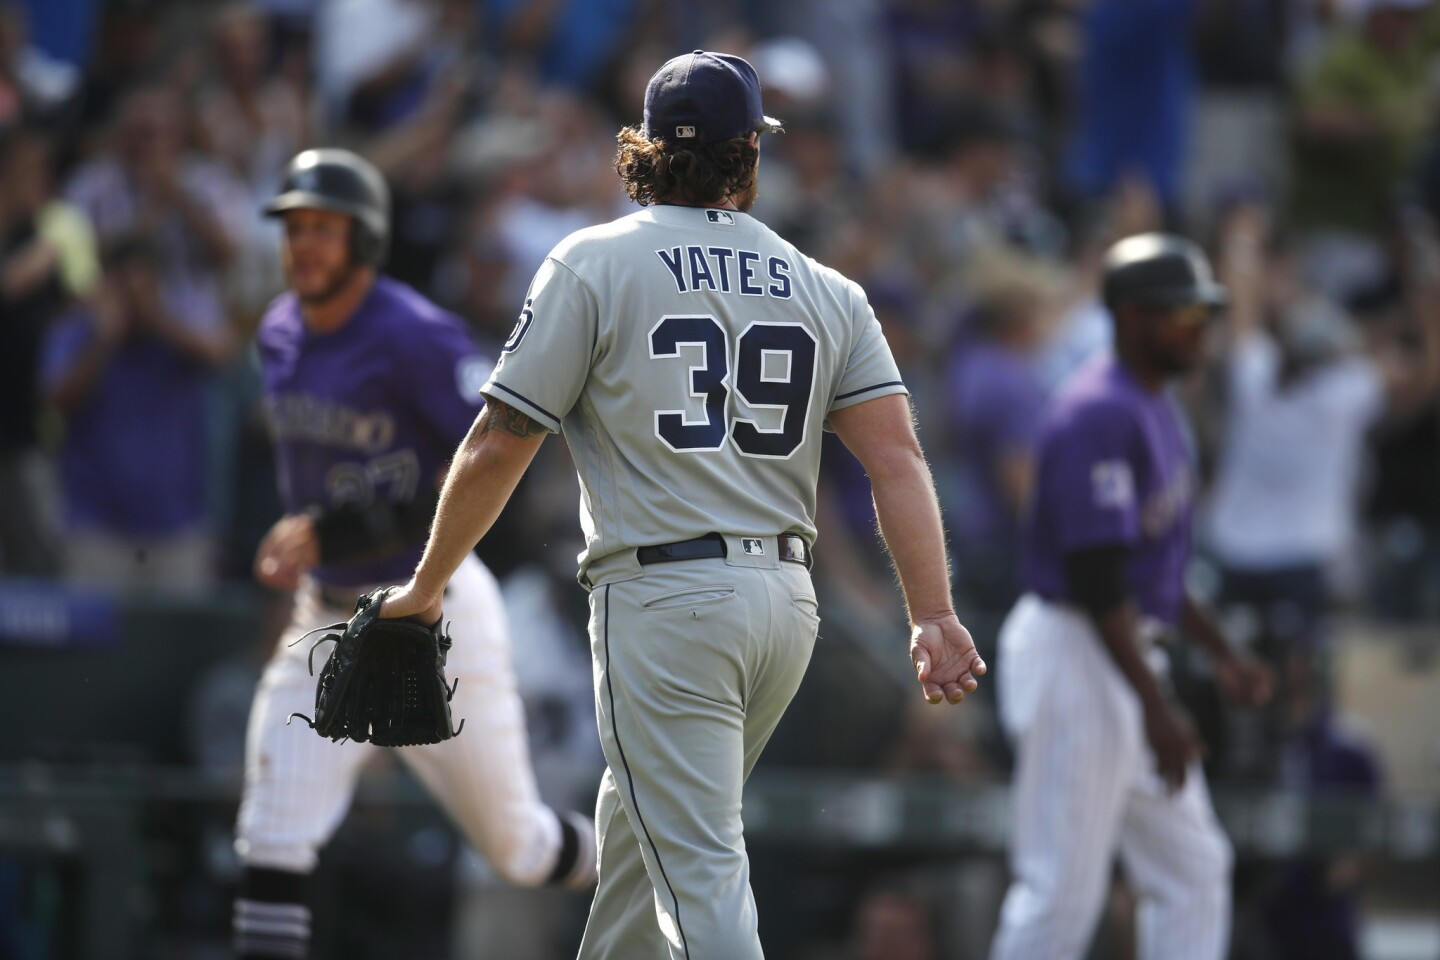 San Diego Padres relief pitcher Kirby Yates, front, heads to the dugout after giving up a two-run, walk off home run to Colorado Rockies' Ian Desmond in the ninth inning of a baseball game Thursday, Aug. 23, 2018, in Denver. The Rockies won 4-3. (AP Photo/David Zalubowski)